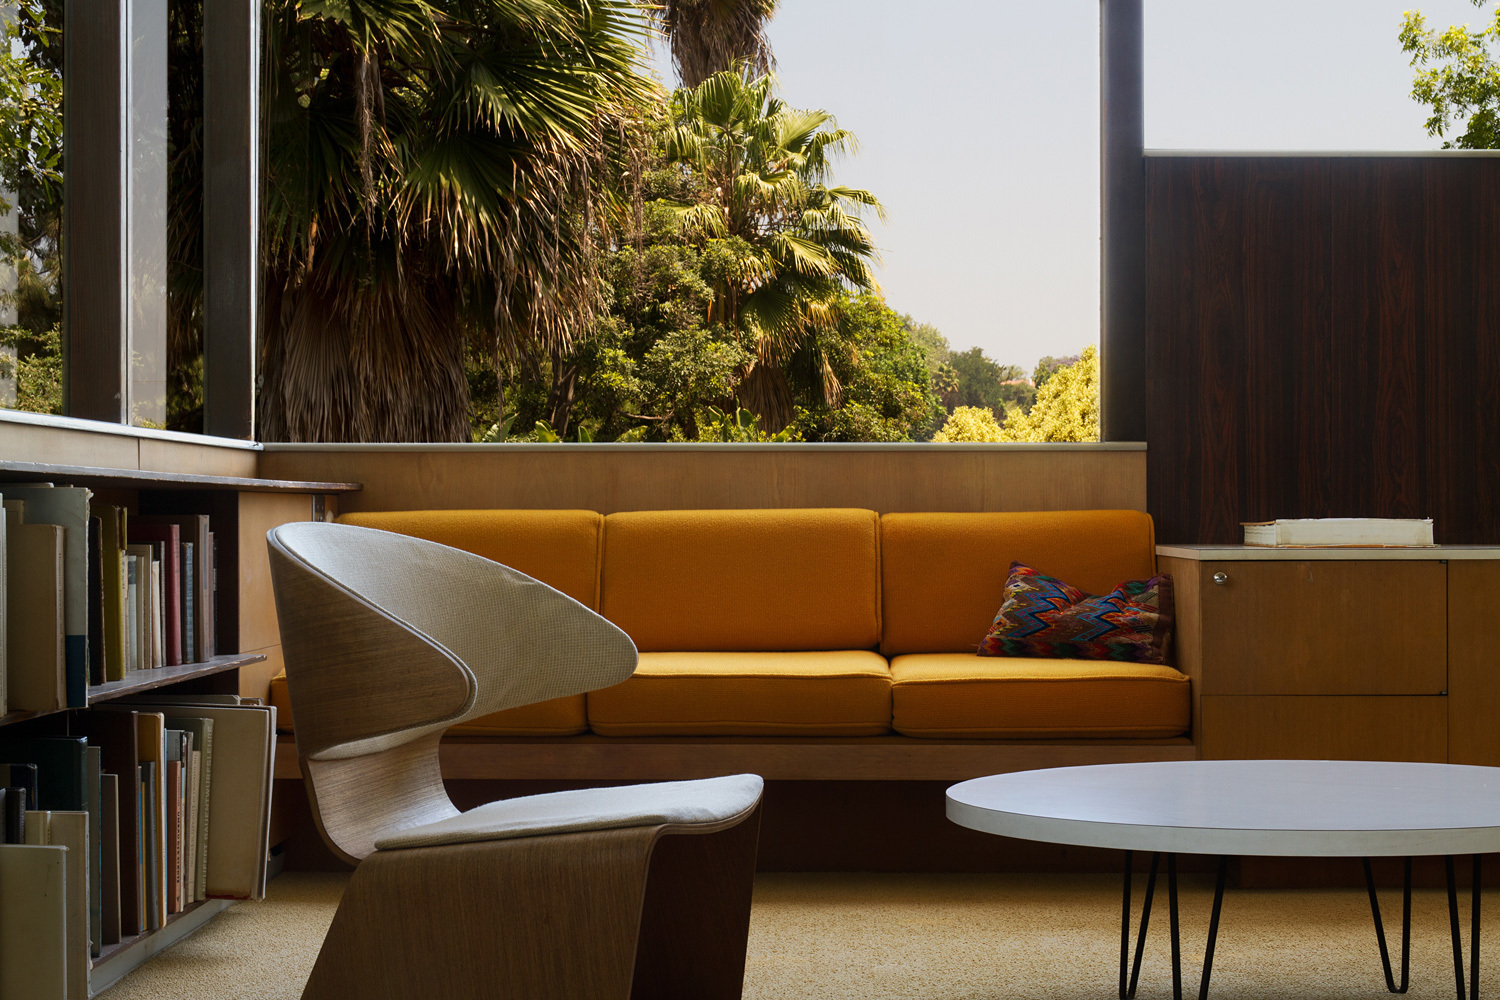 Head Over To The Neutra VDL House For A Book Reading Signing Of Aris Janigians Waiting Lipchitz At Chateau Marmont This Saturday